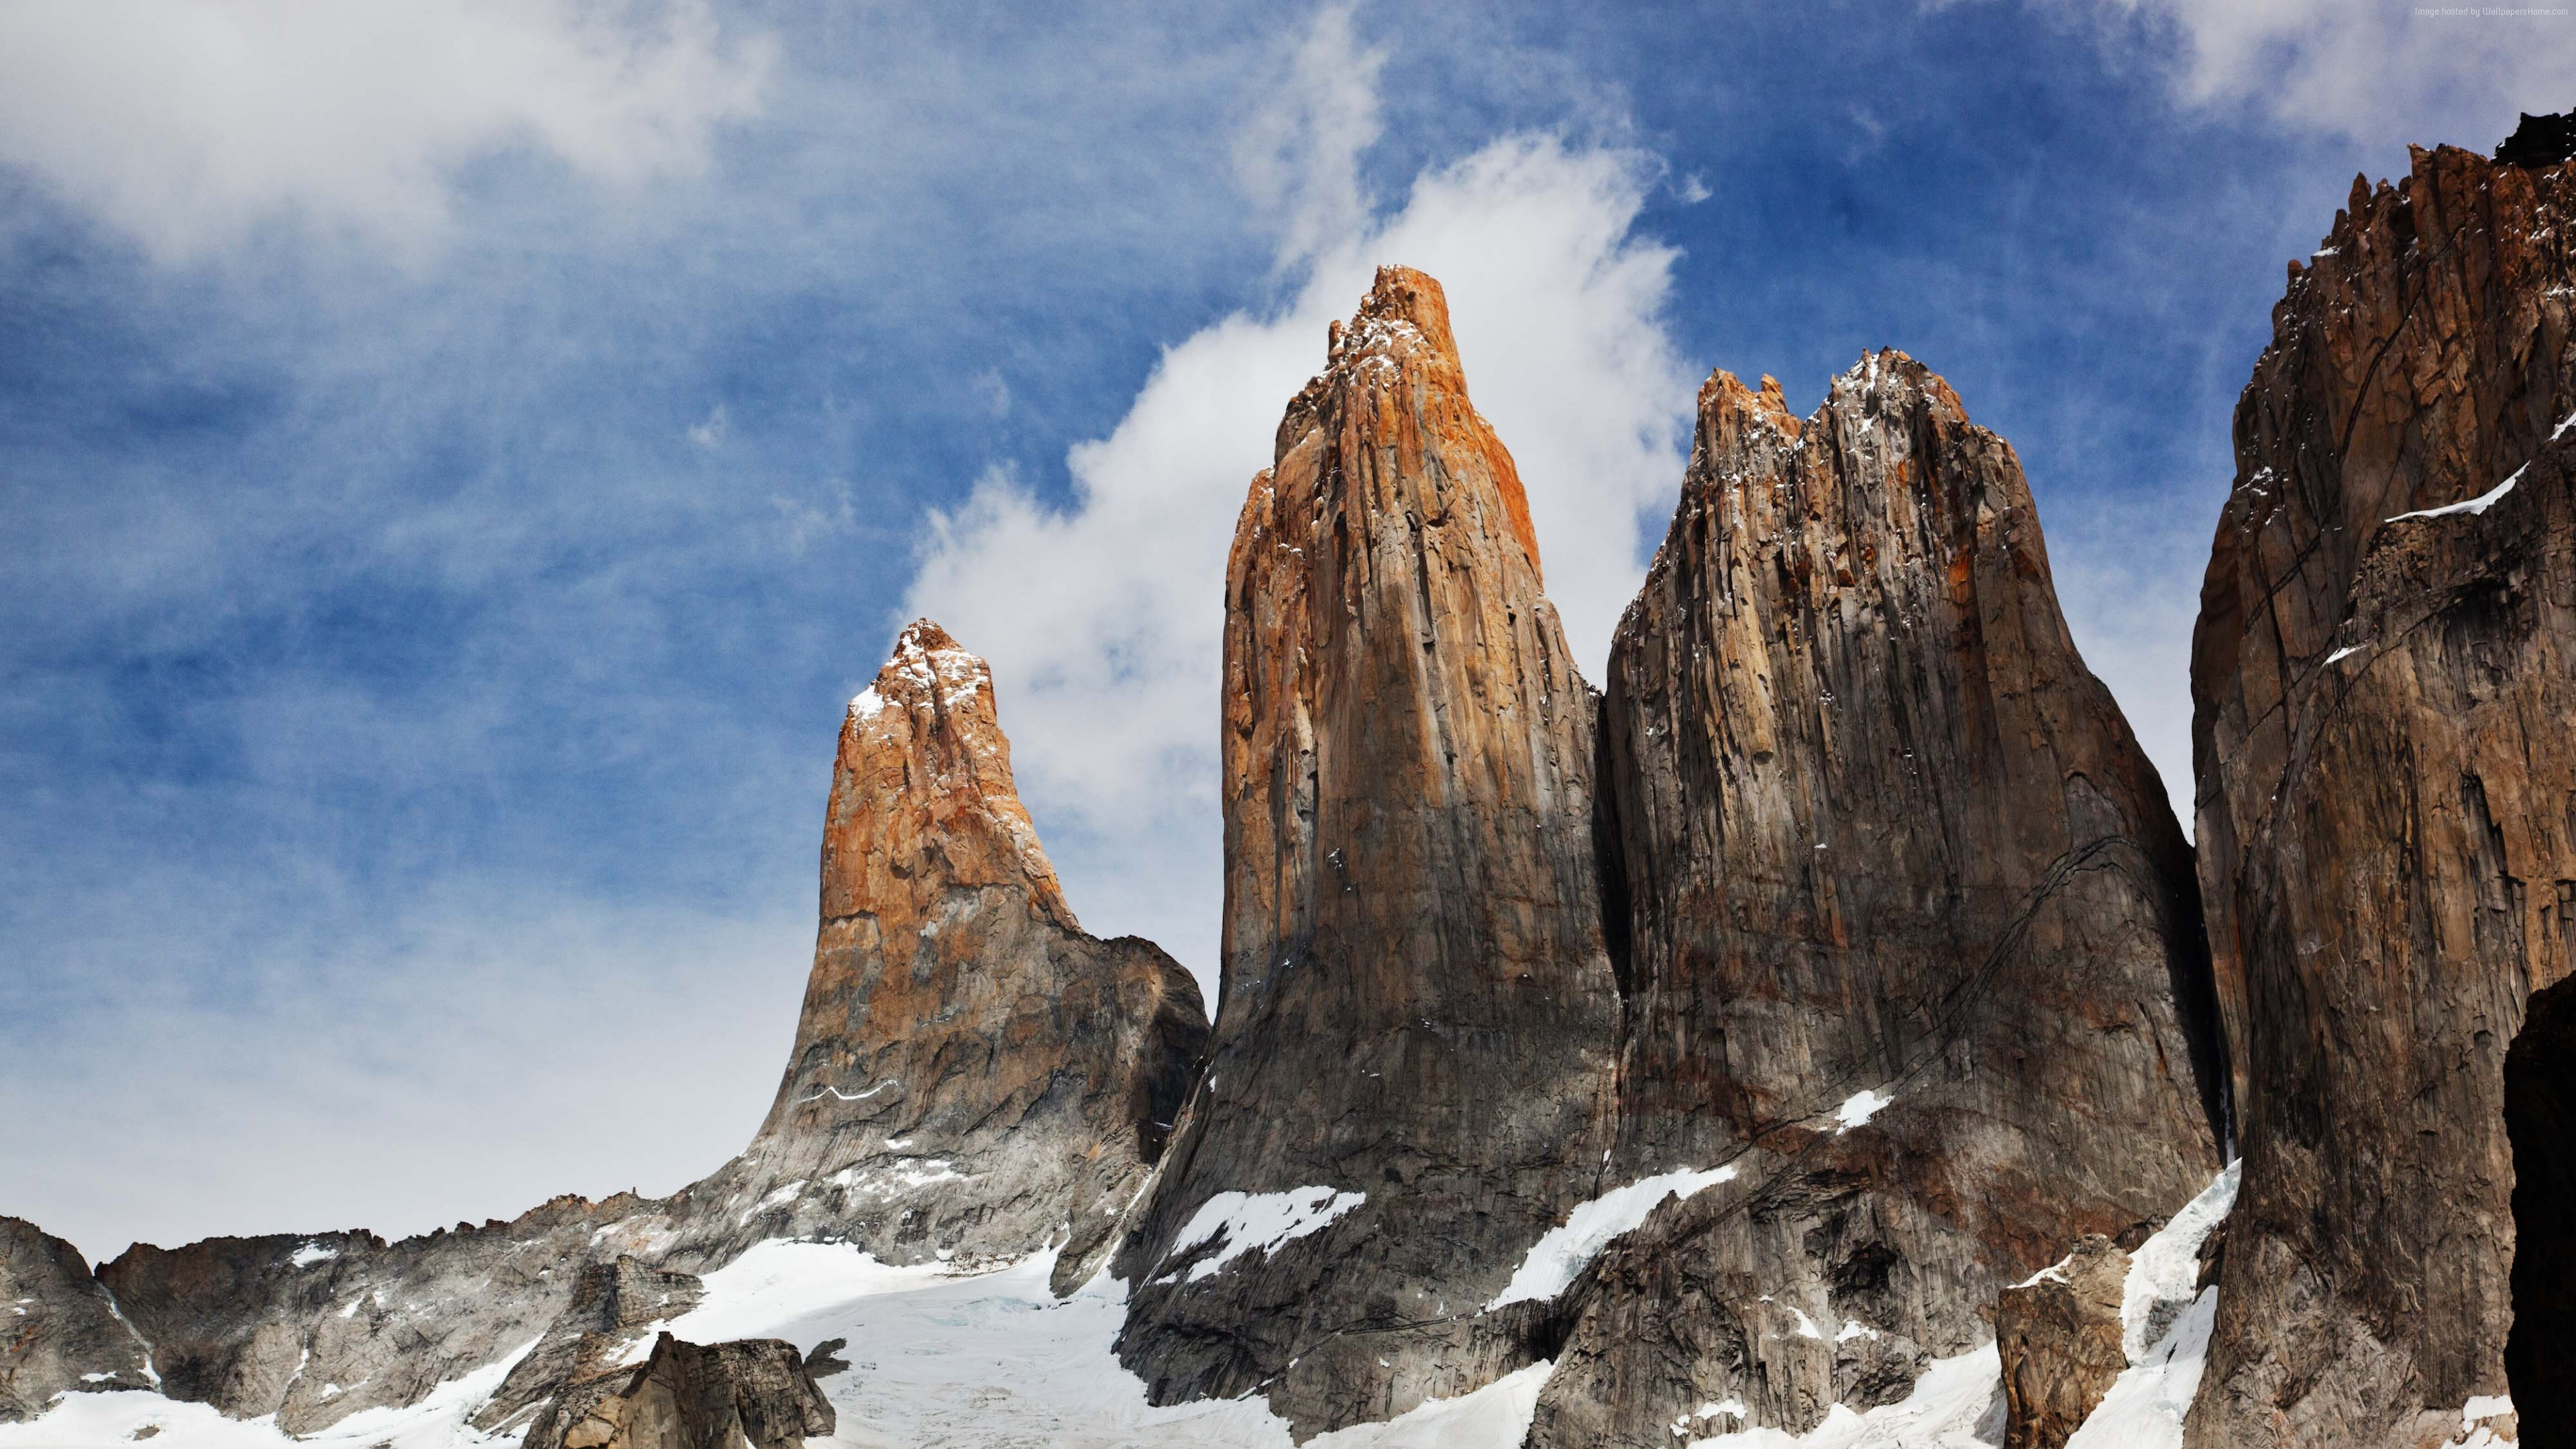 Wallpaper Torres del Paine, Chile, sky, mountains, 4k, Travel